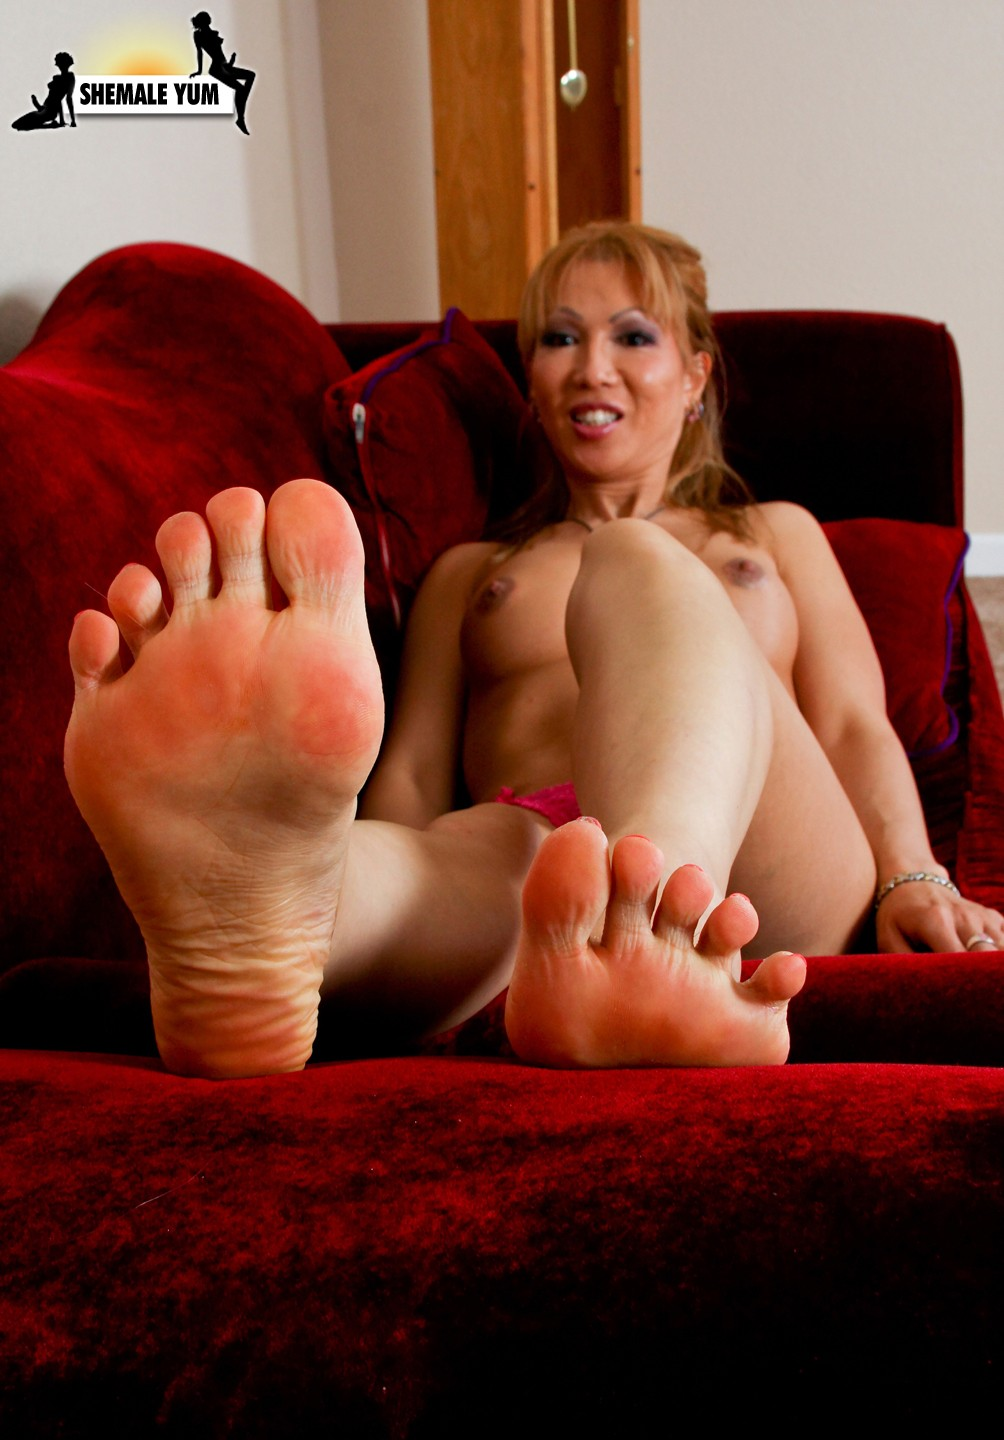 Shemale feet soles